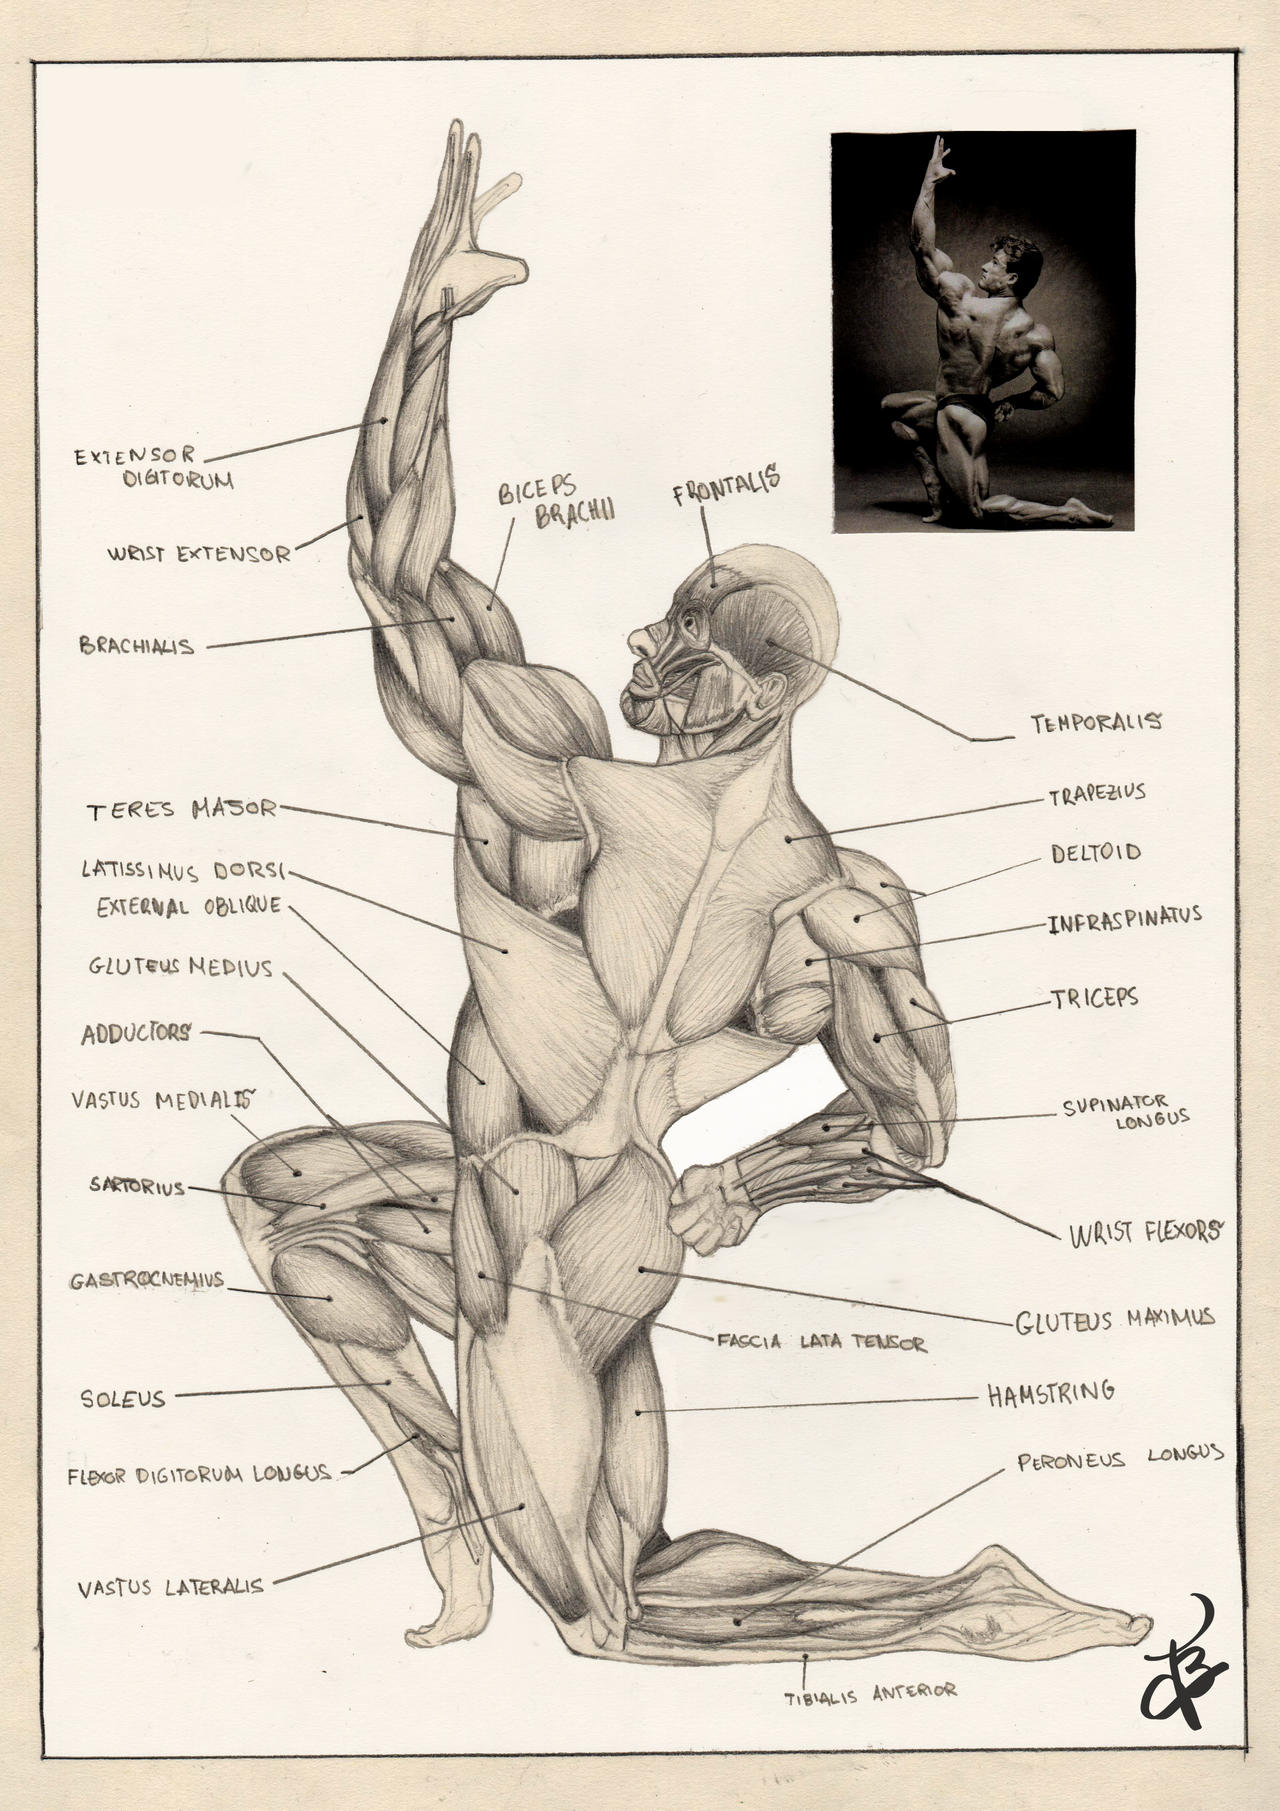 muscles of the human body by lvito00 on deviantart, Muscles